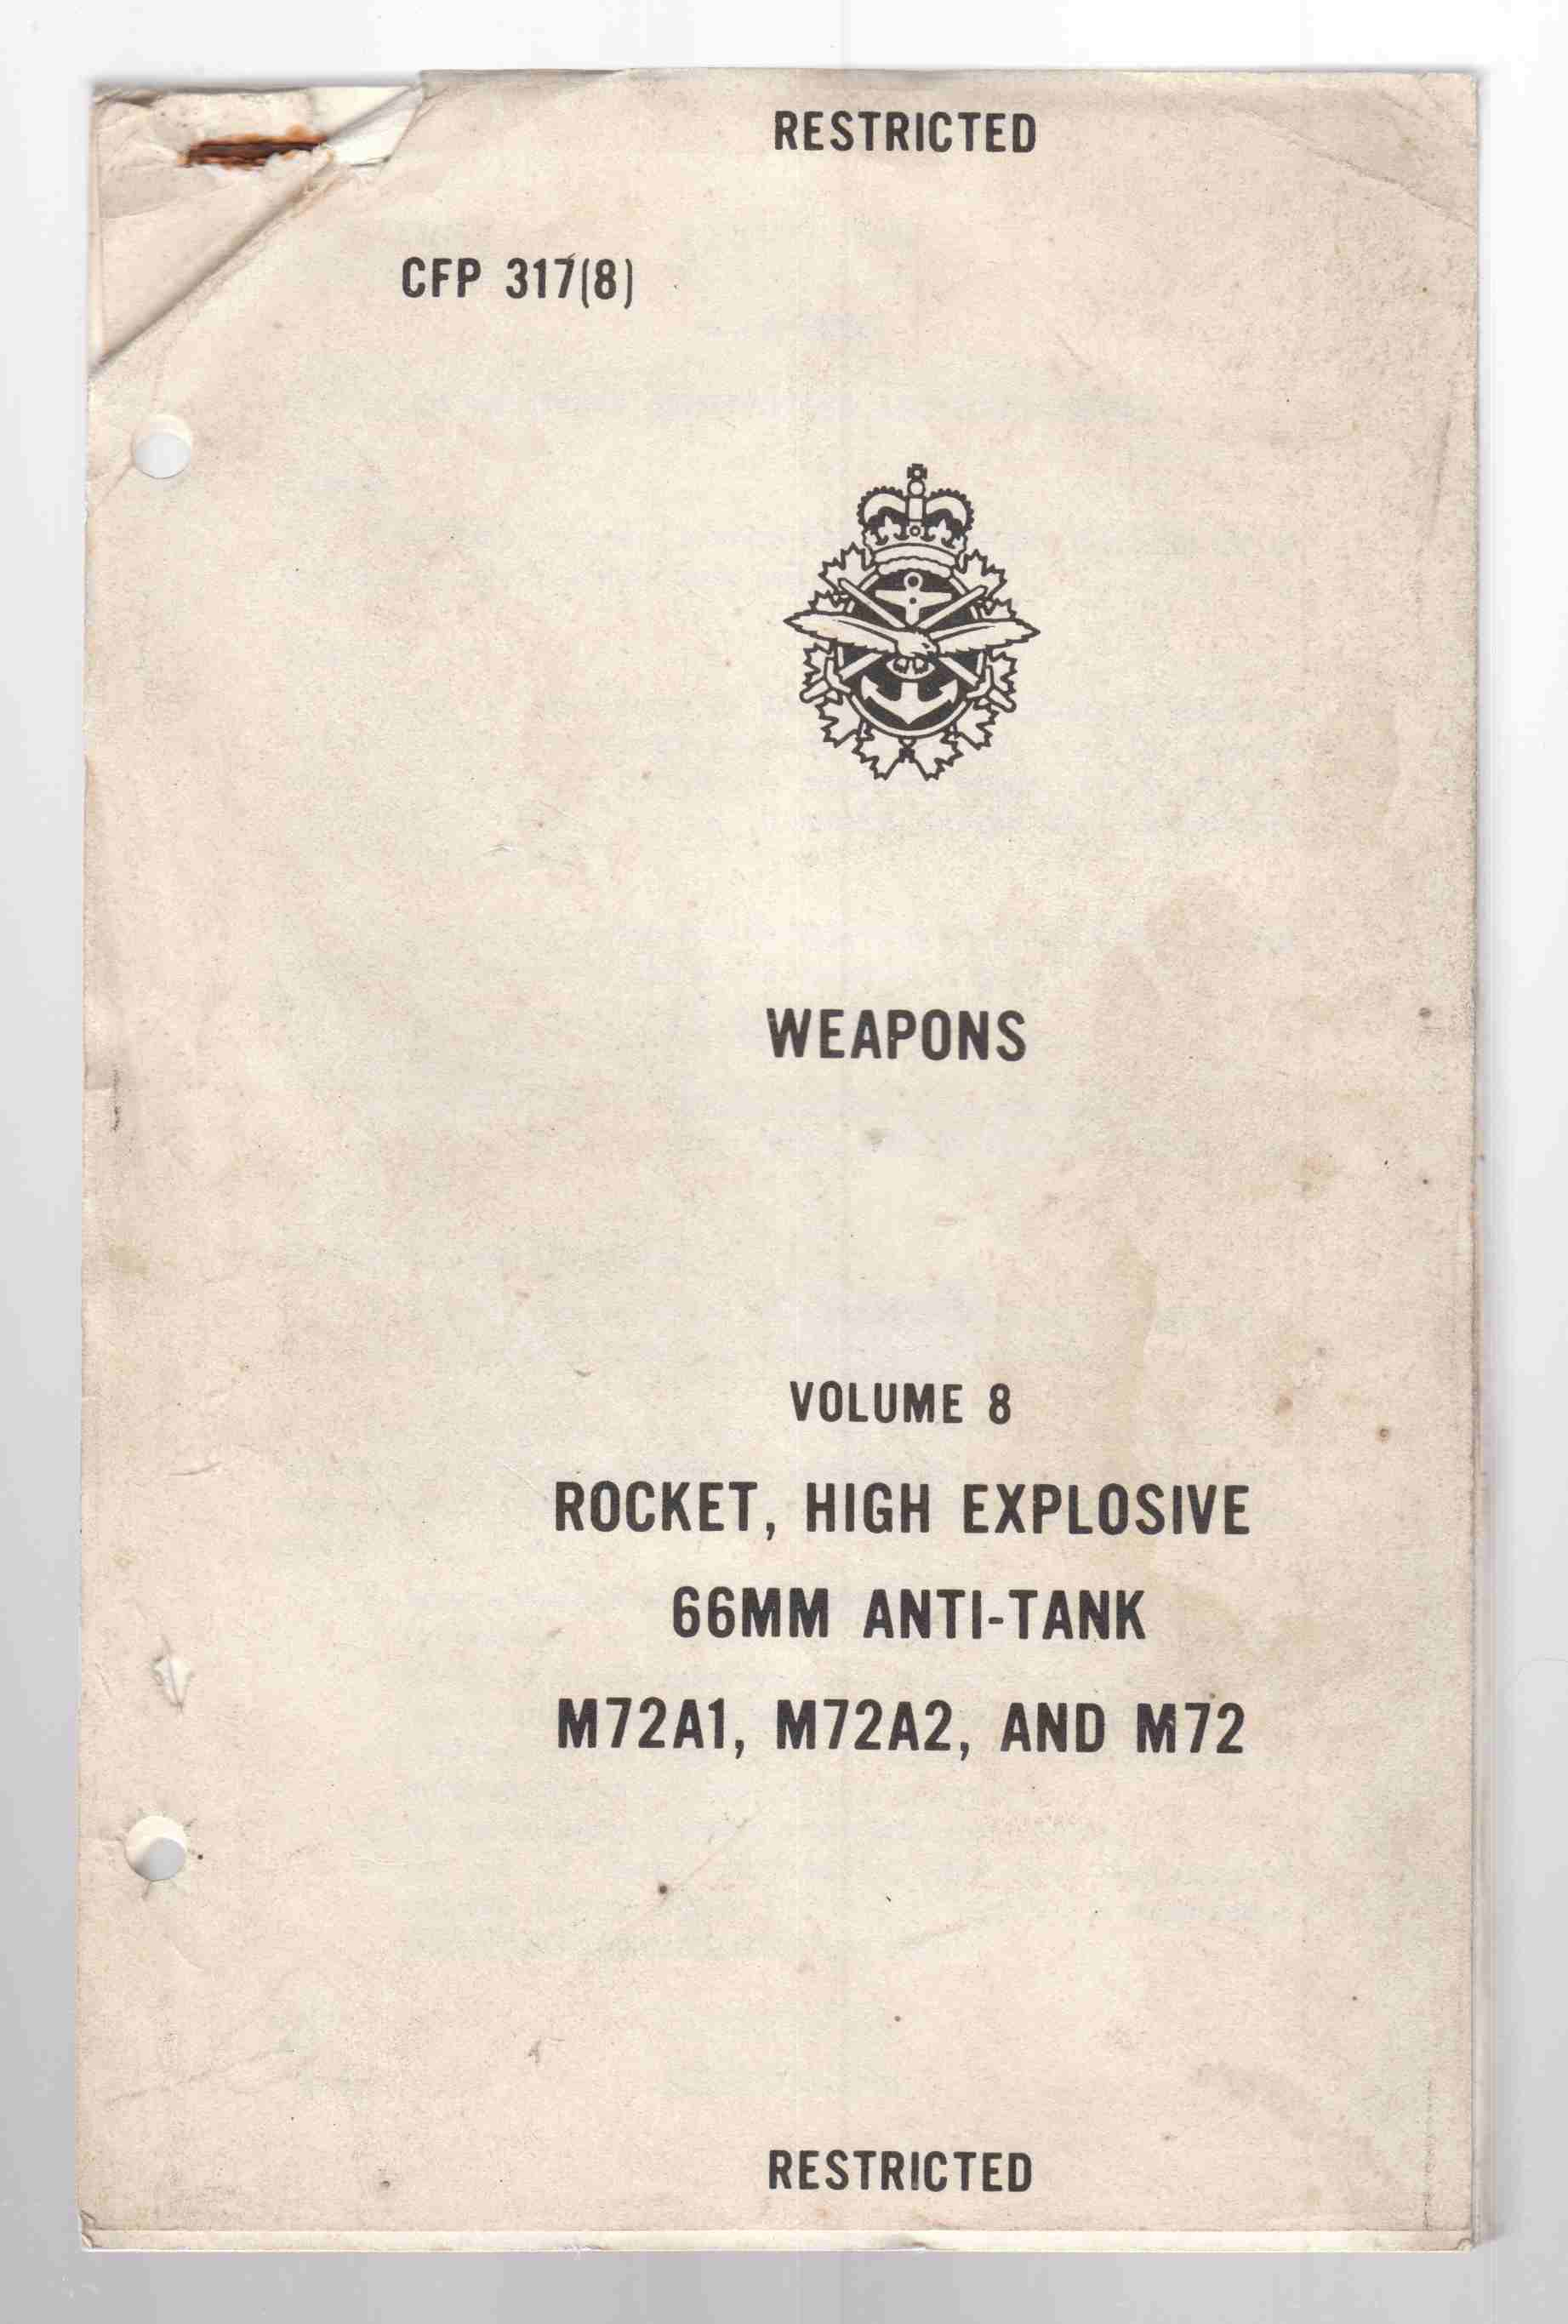 Image for Weapons Volume 8 Rocket, High Explosive 66mm Anti-Tank M72A1, M72A2, and M72 CFP317 (8)  Armes Volume 8 Roquette Antichar De 66mm a Explosif Brisant Modeles M72A1, M72A2, et M72 PFC 317(8)